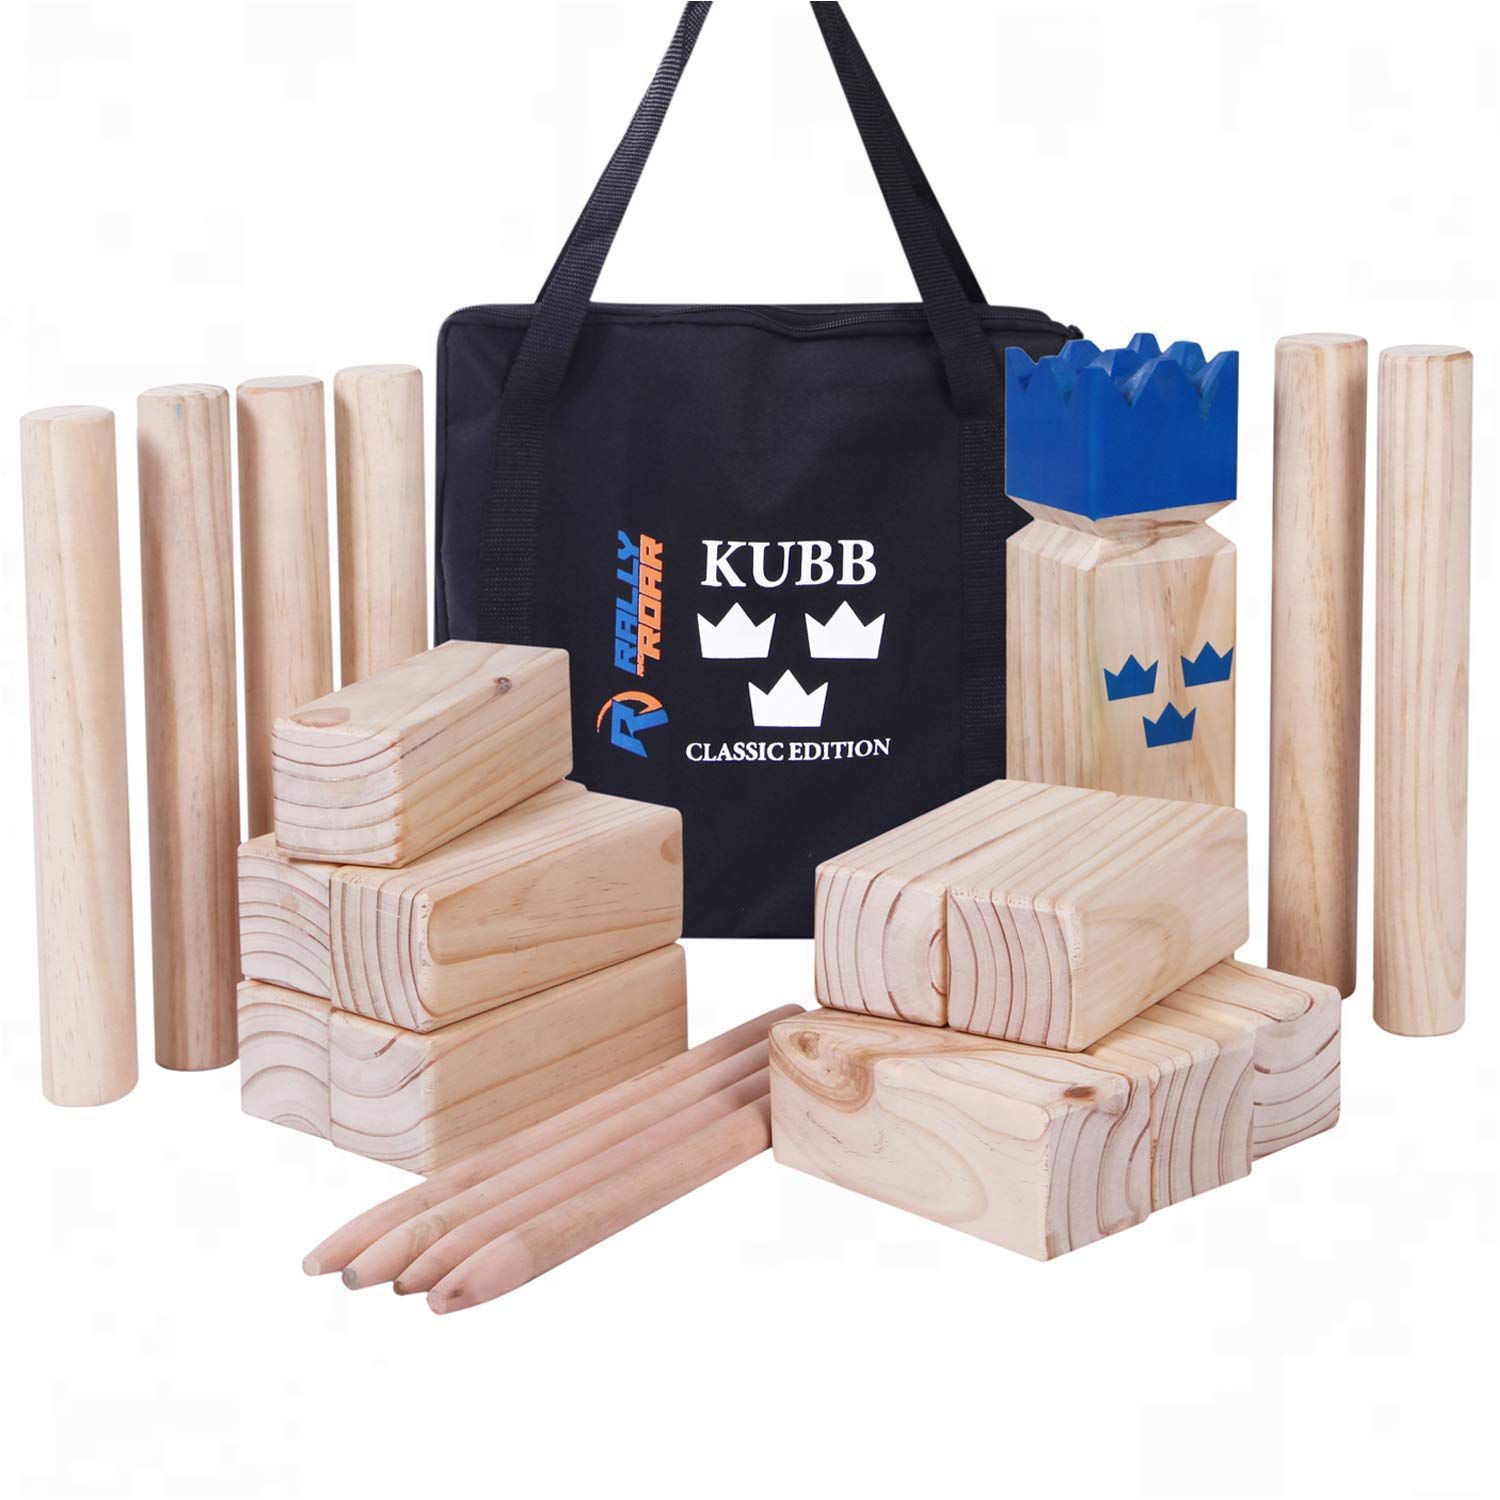 Kubb Yard Game Set by Rally and Roar for Adults, Families - Fun, Interactive Outdoor Family Games - Durable Blocks with Travel Bag - Games for Outside, Lawn, Backyards